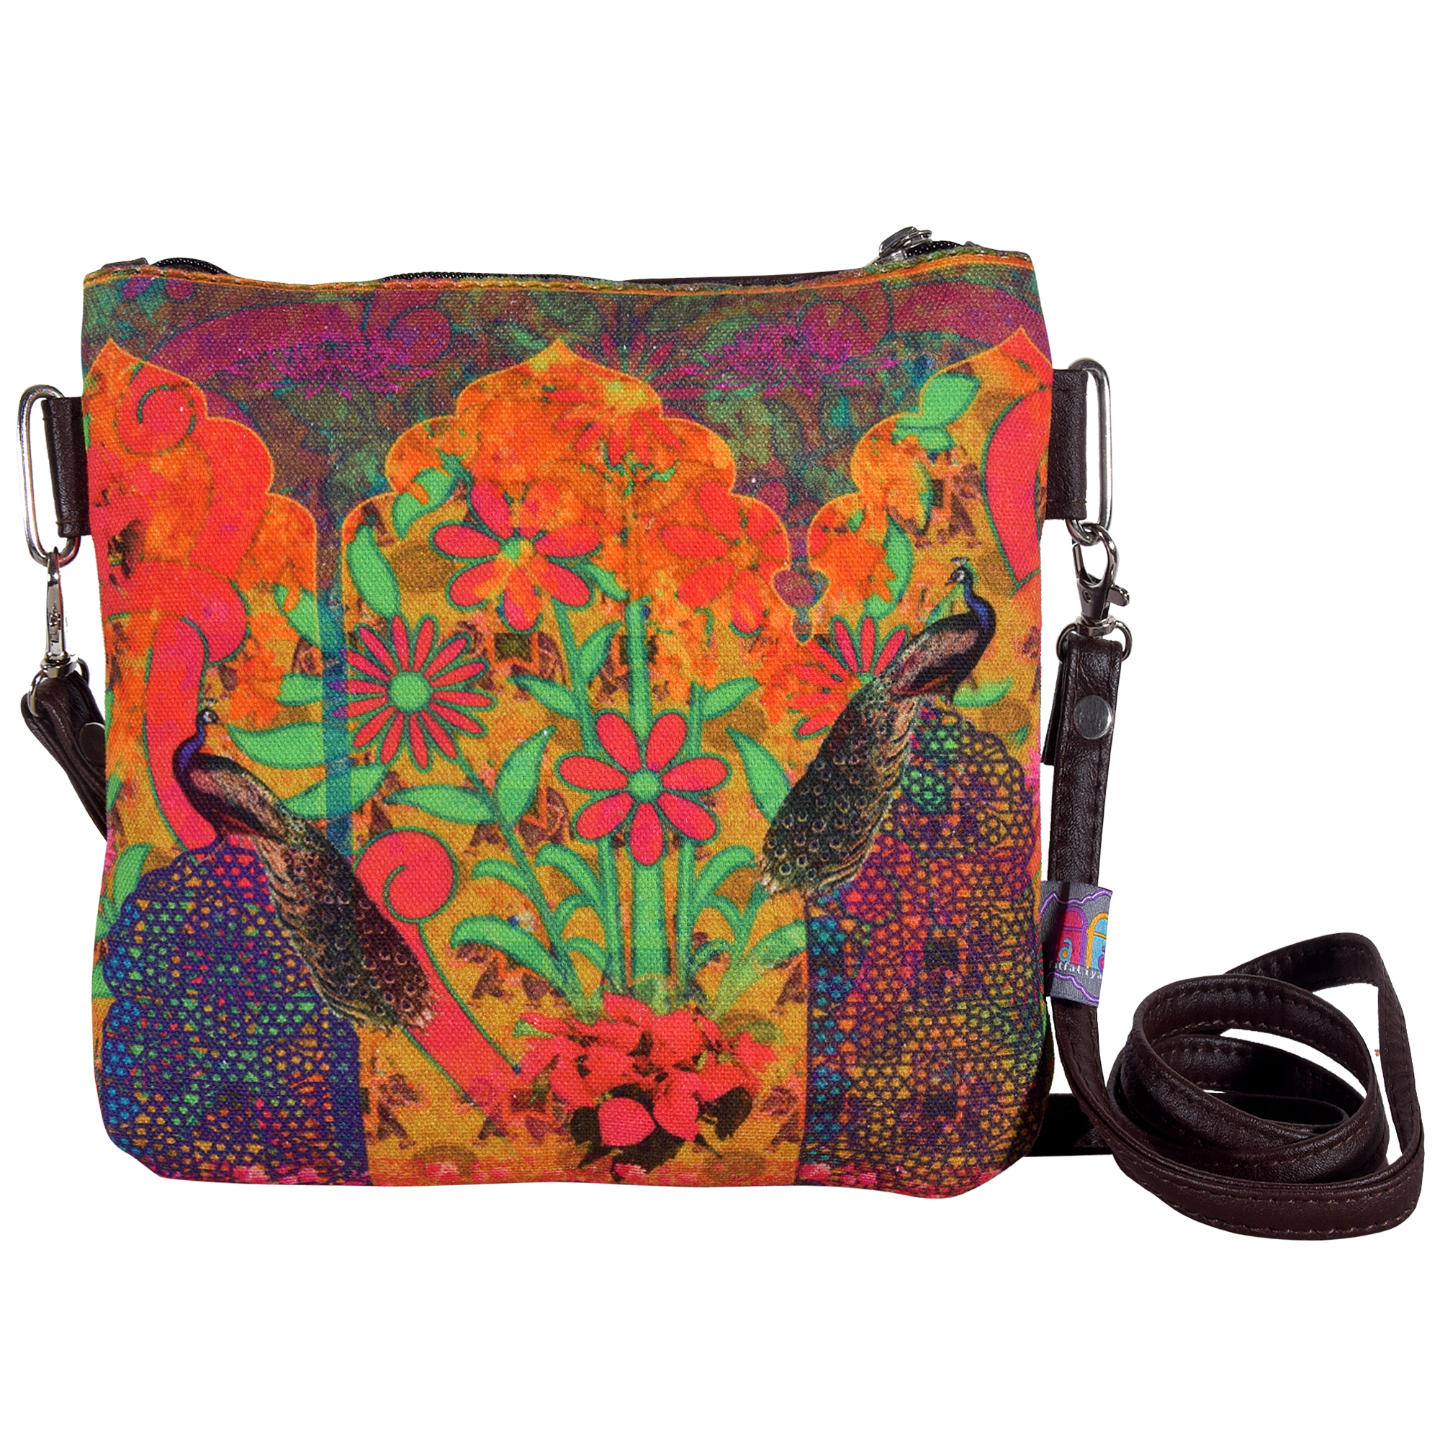 Two Peacock & Flower Small Sling Bag